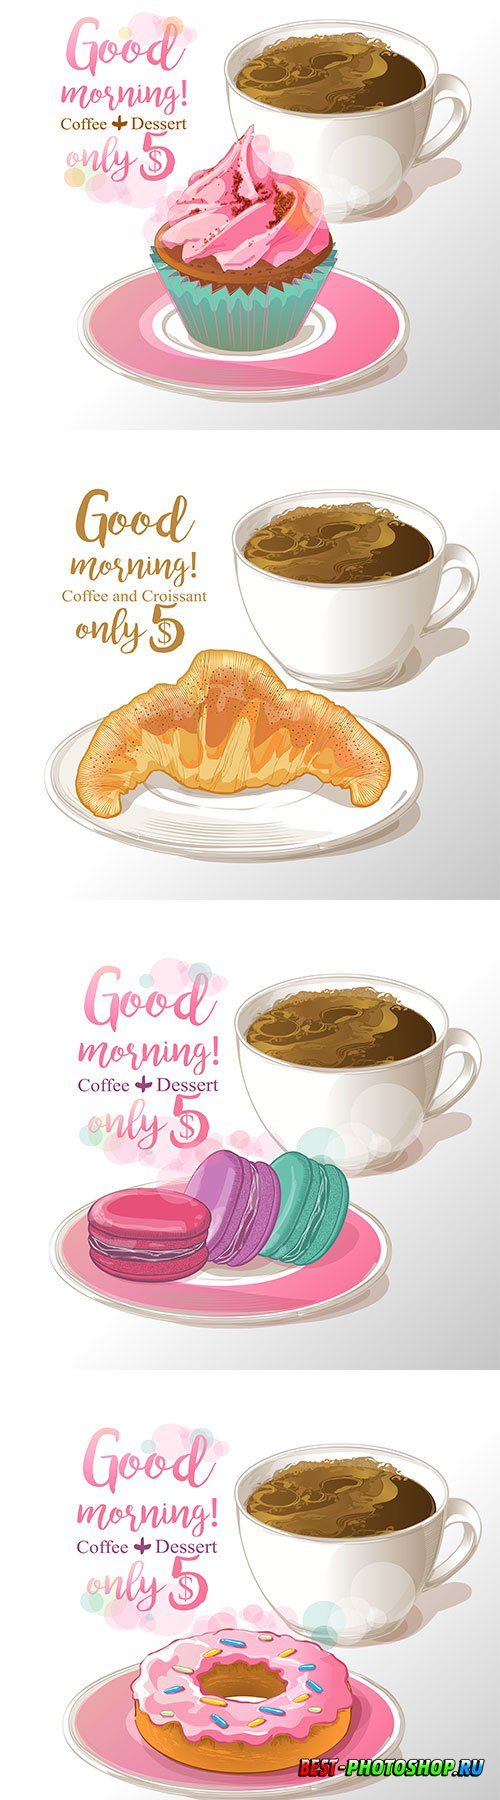 Cup of coffee with donut in vector